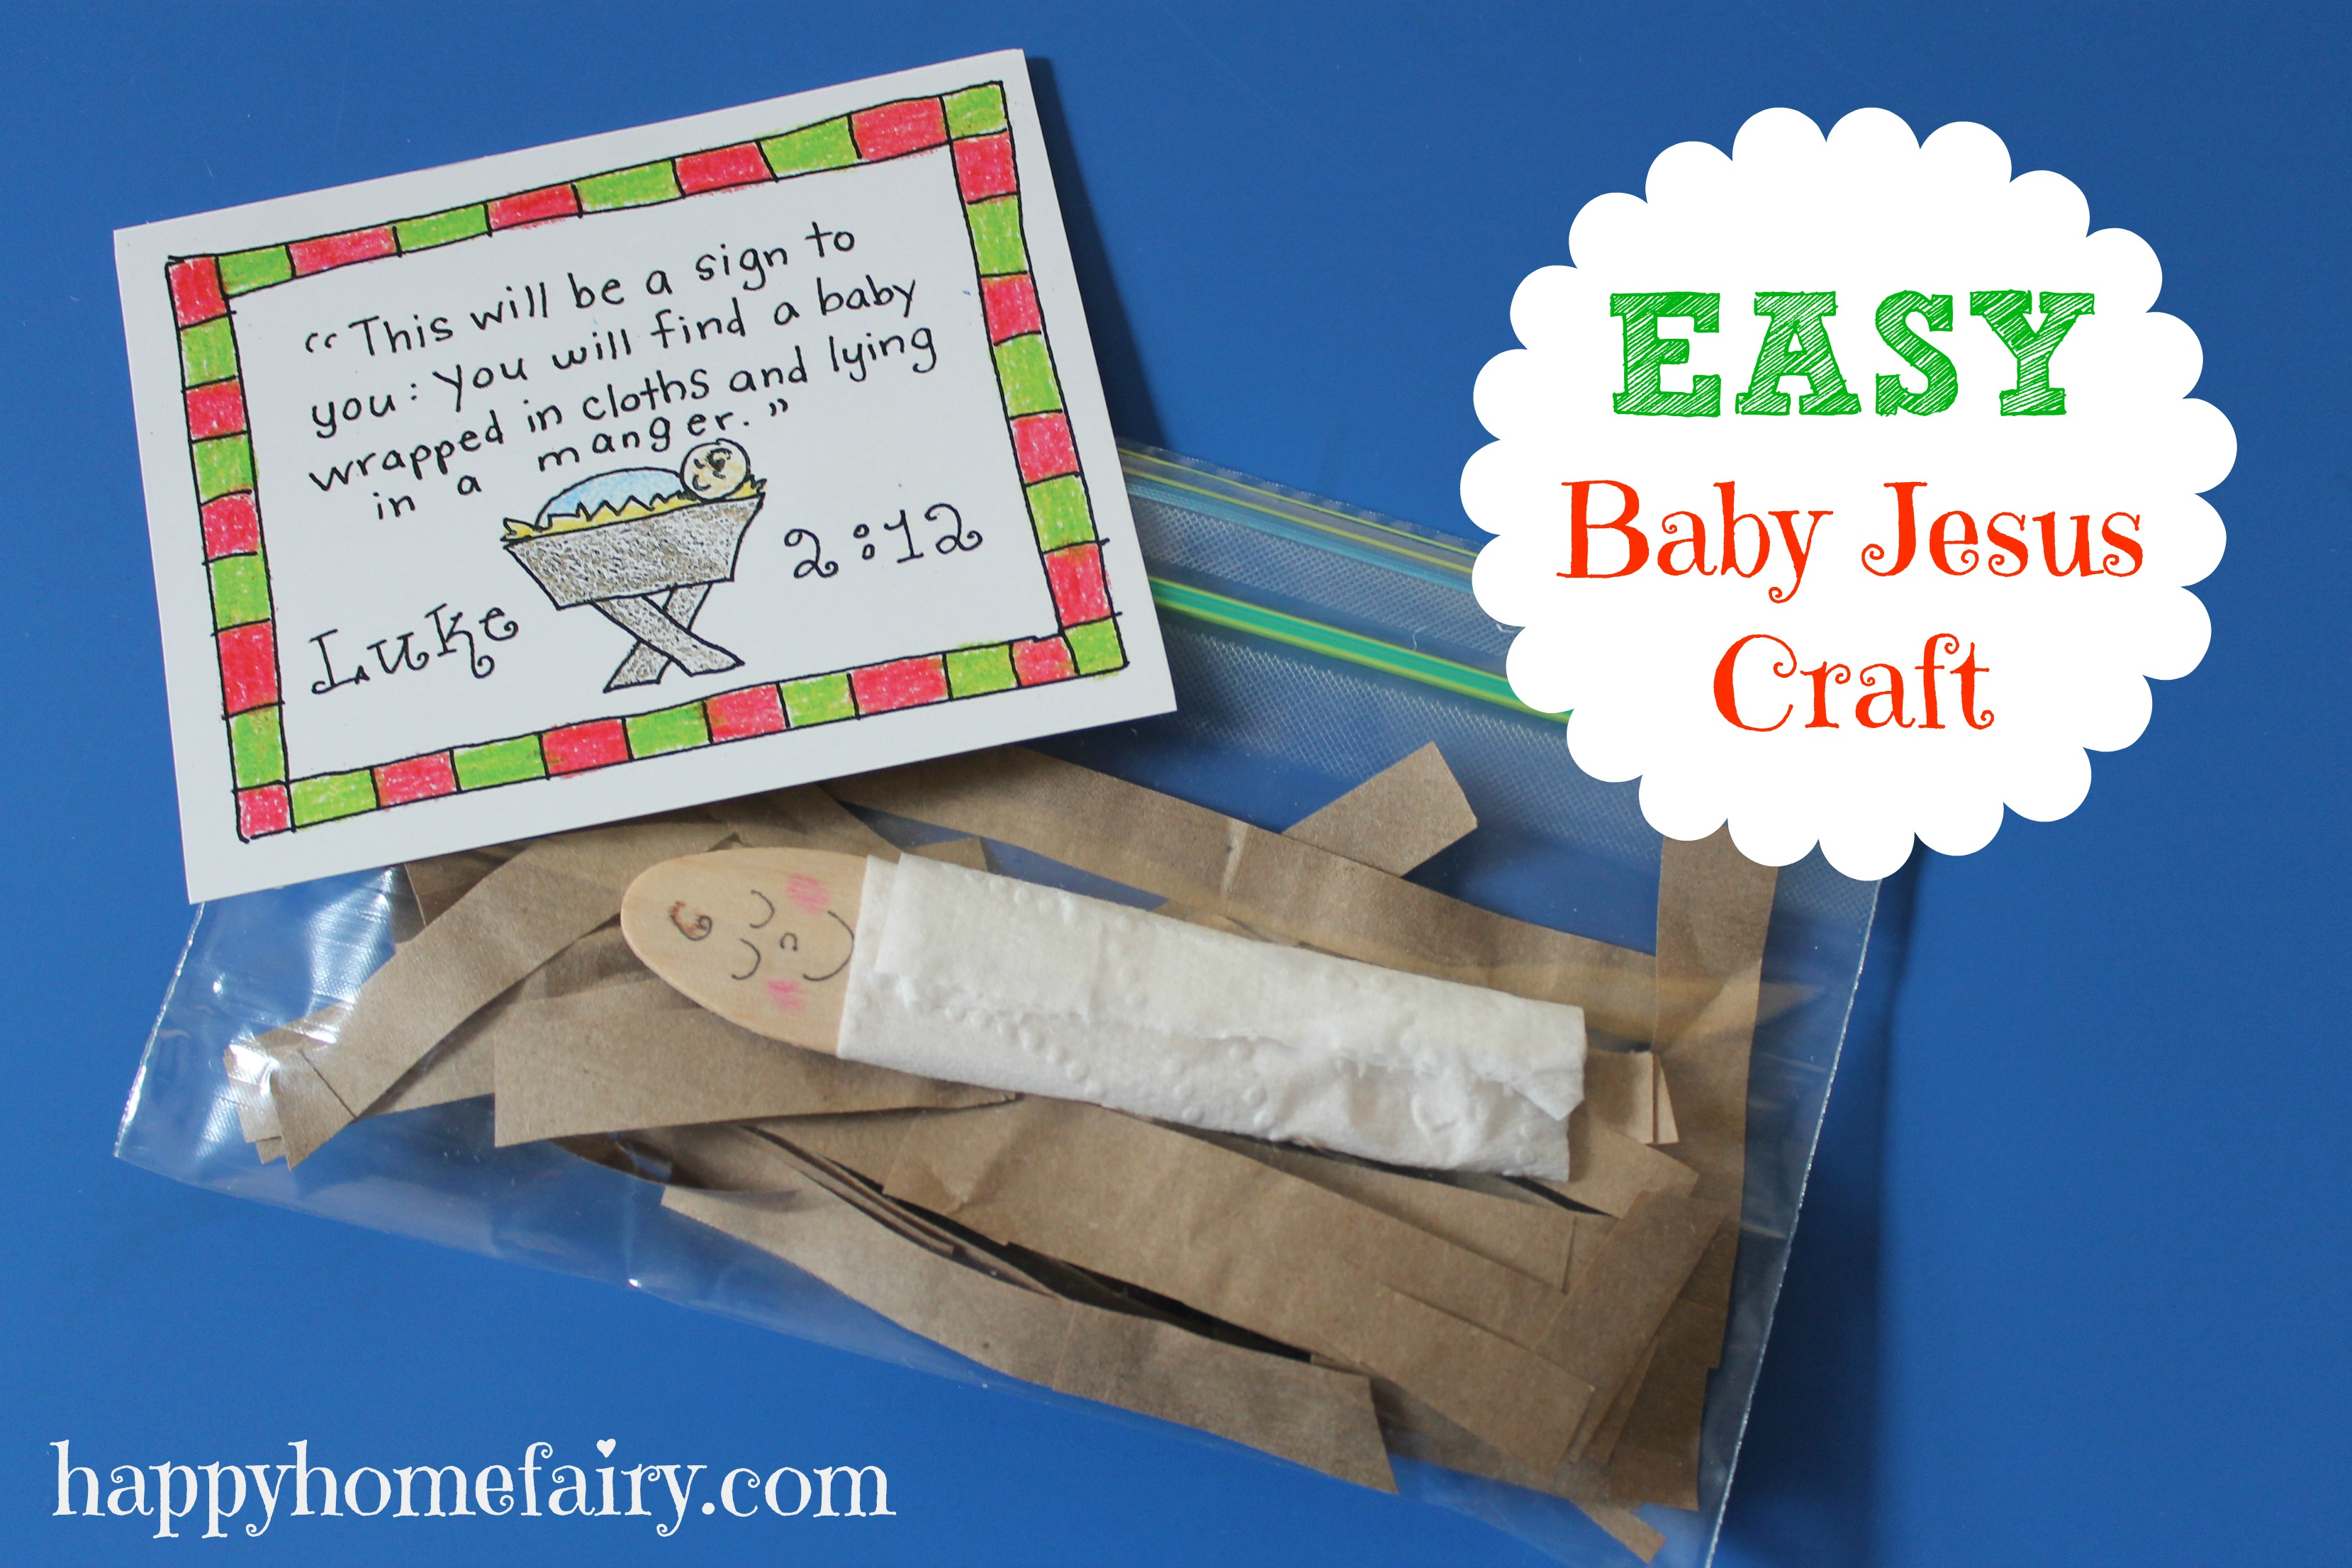 Baby Jesus Crafts And Ideas Happy Home Fairy